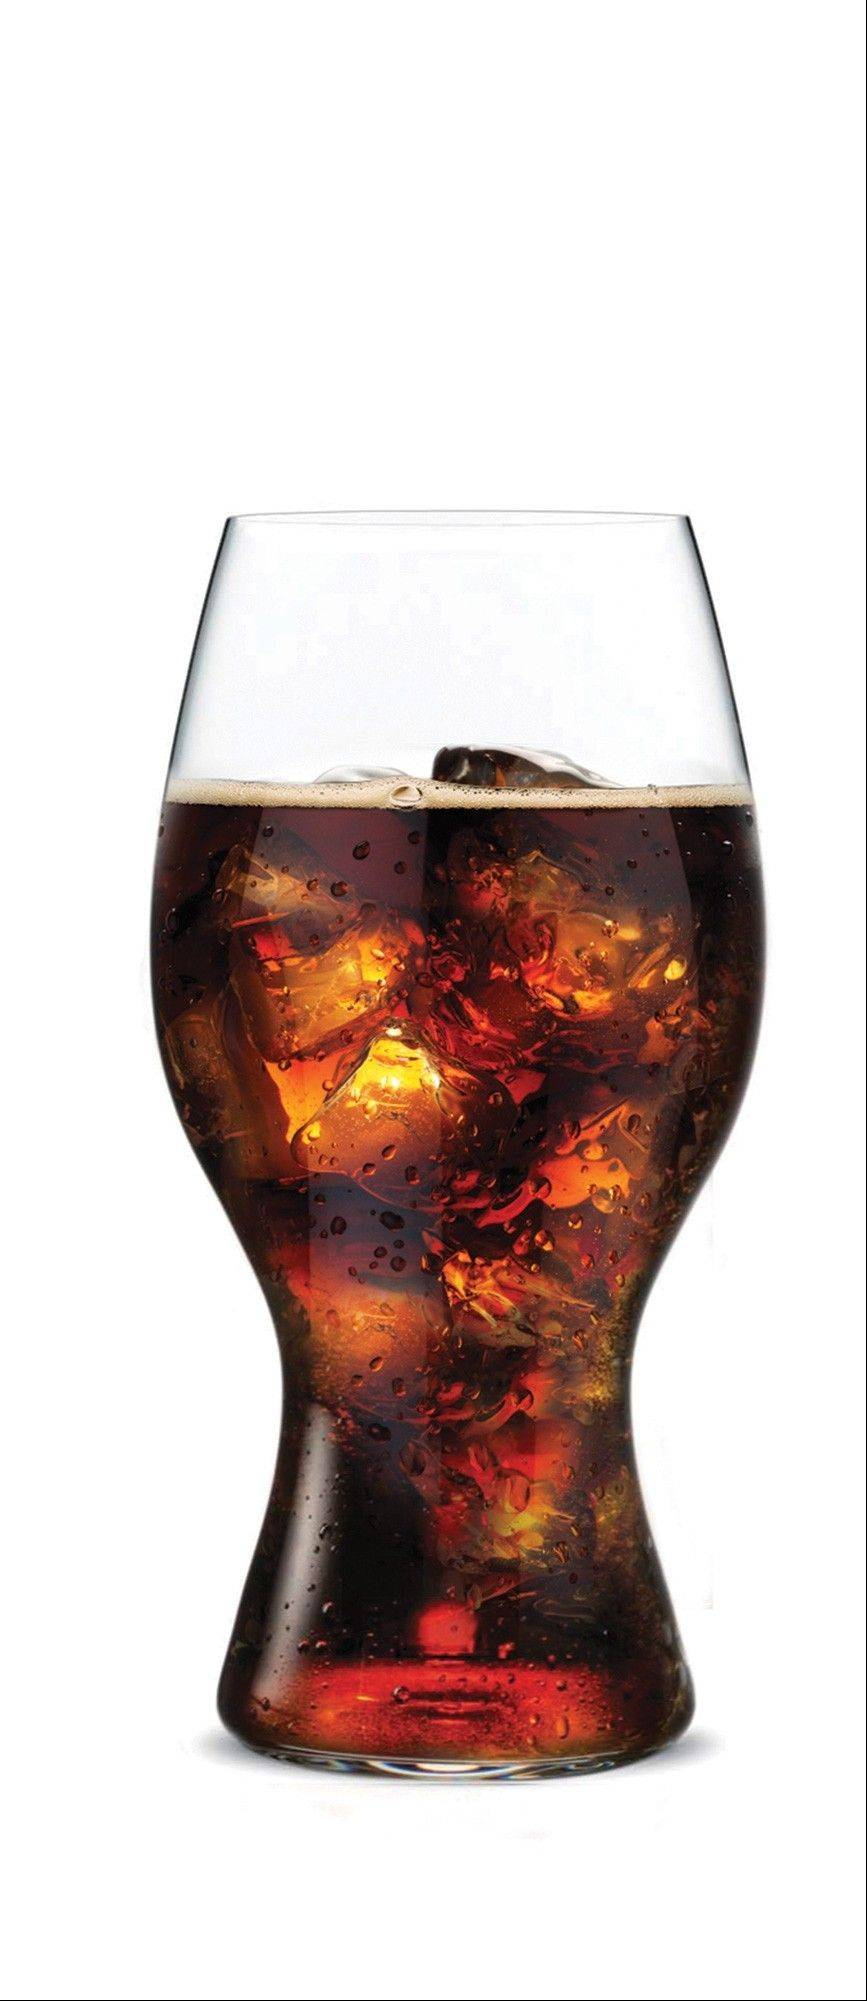 Glassware maker Riedel worked with Coca-Cola to develop a glass that accentuates the flavor and mouth feel of the iconic beverage.